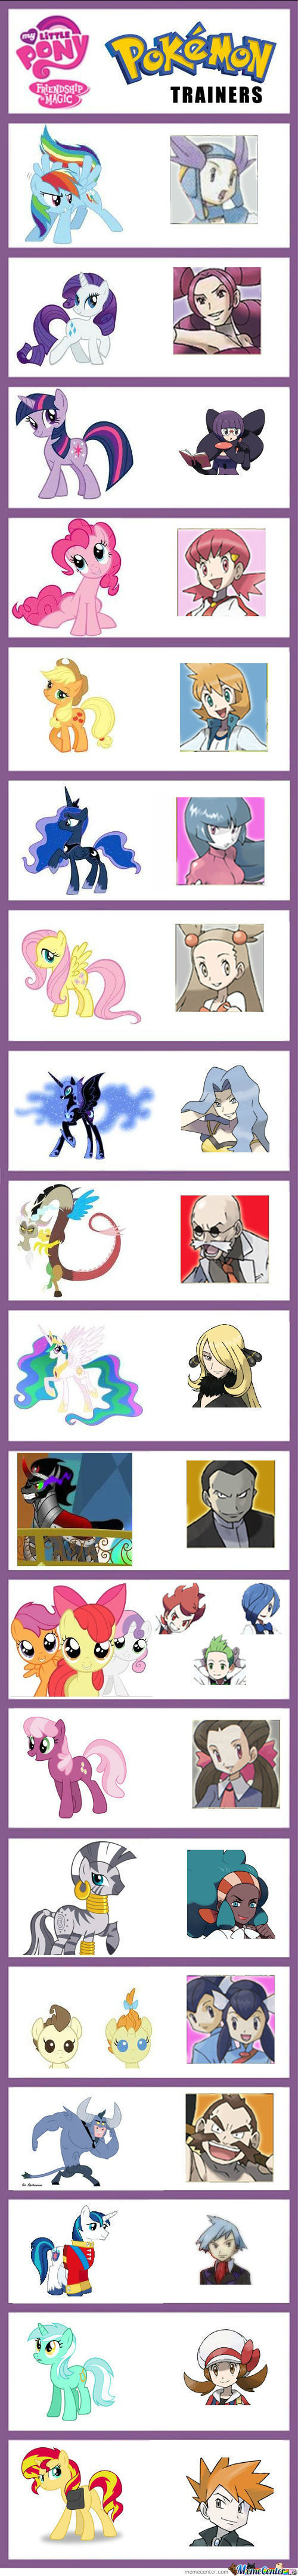 Pokemon Characters As Mlp Characters